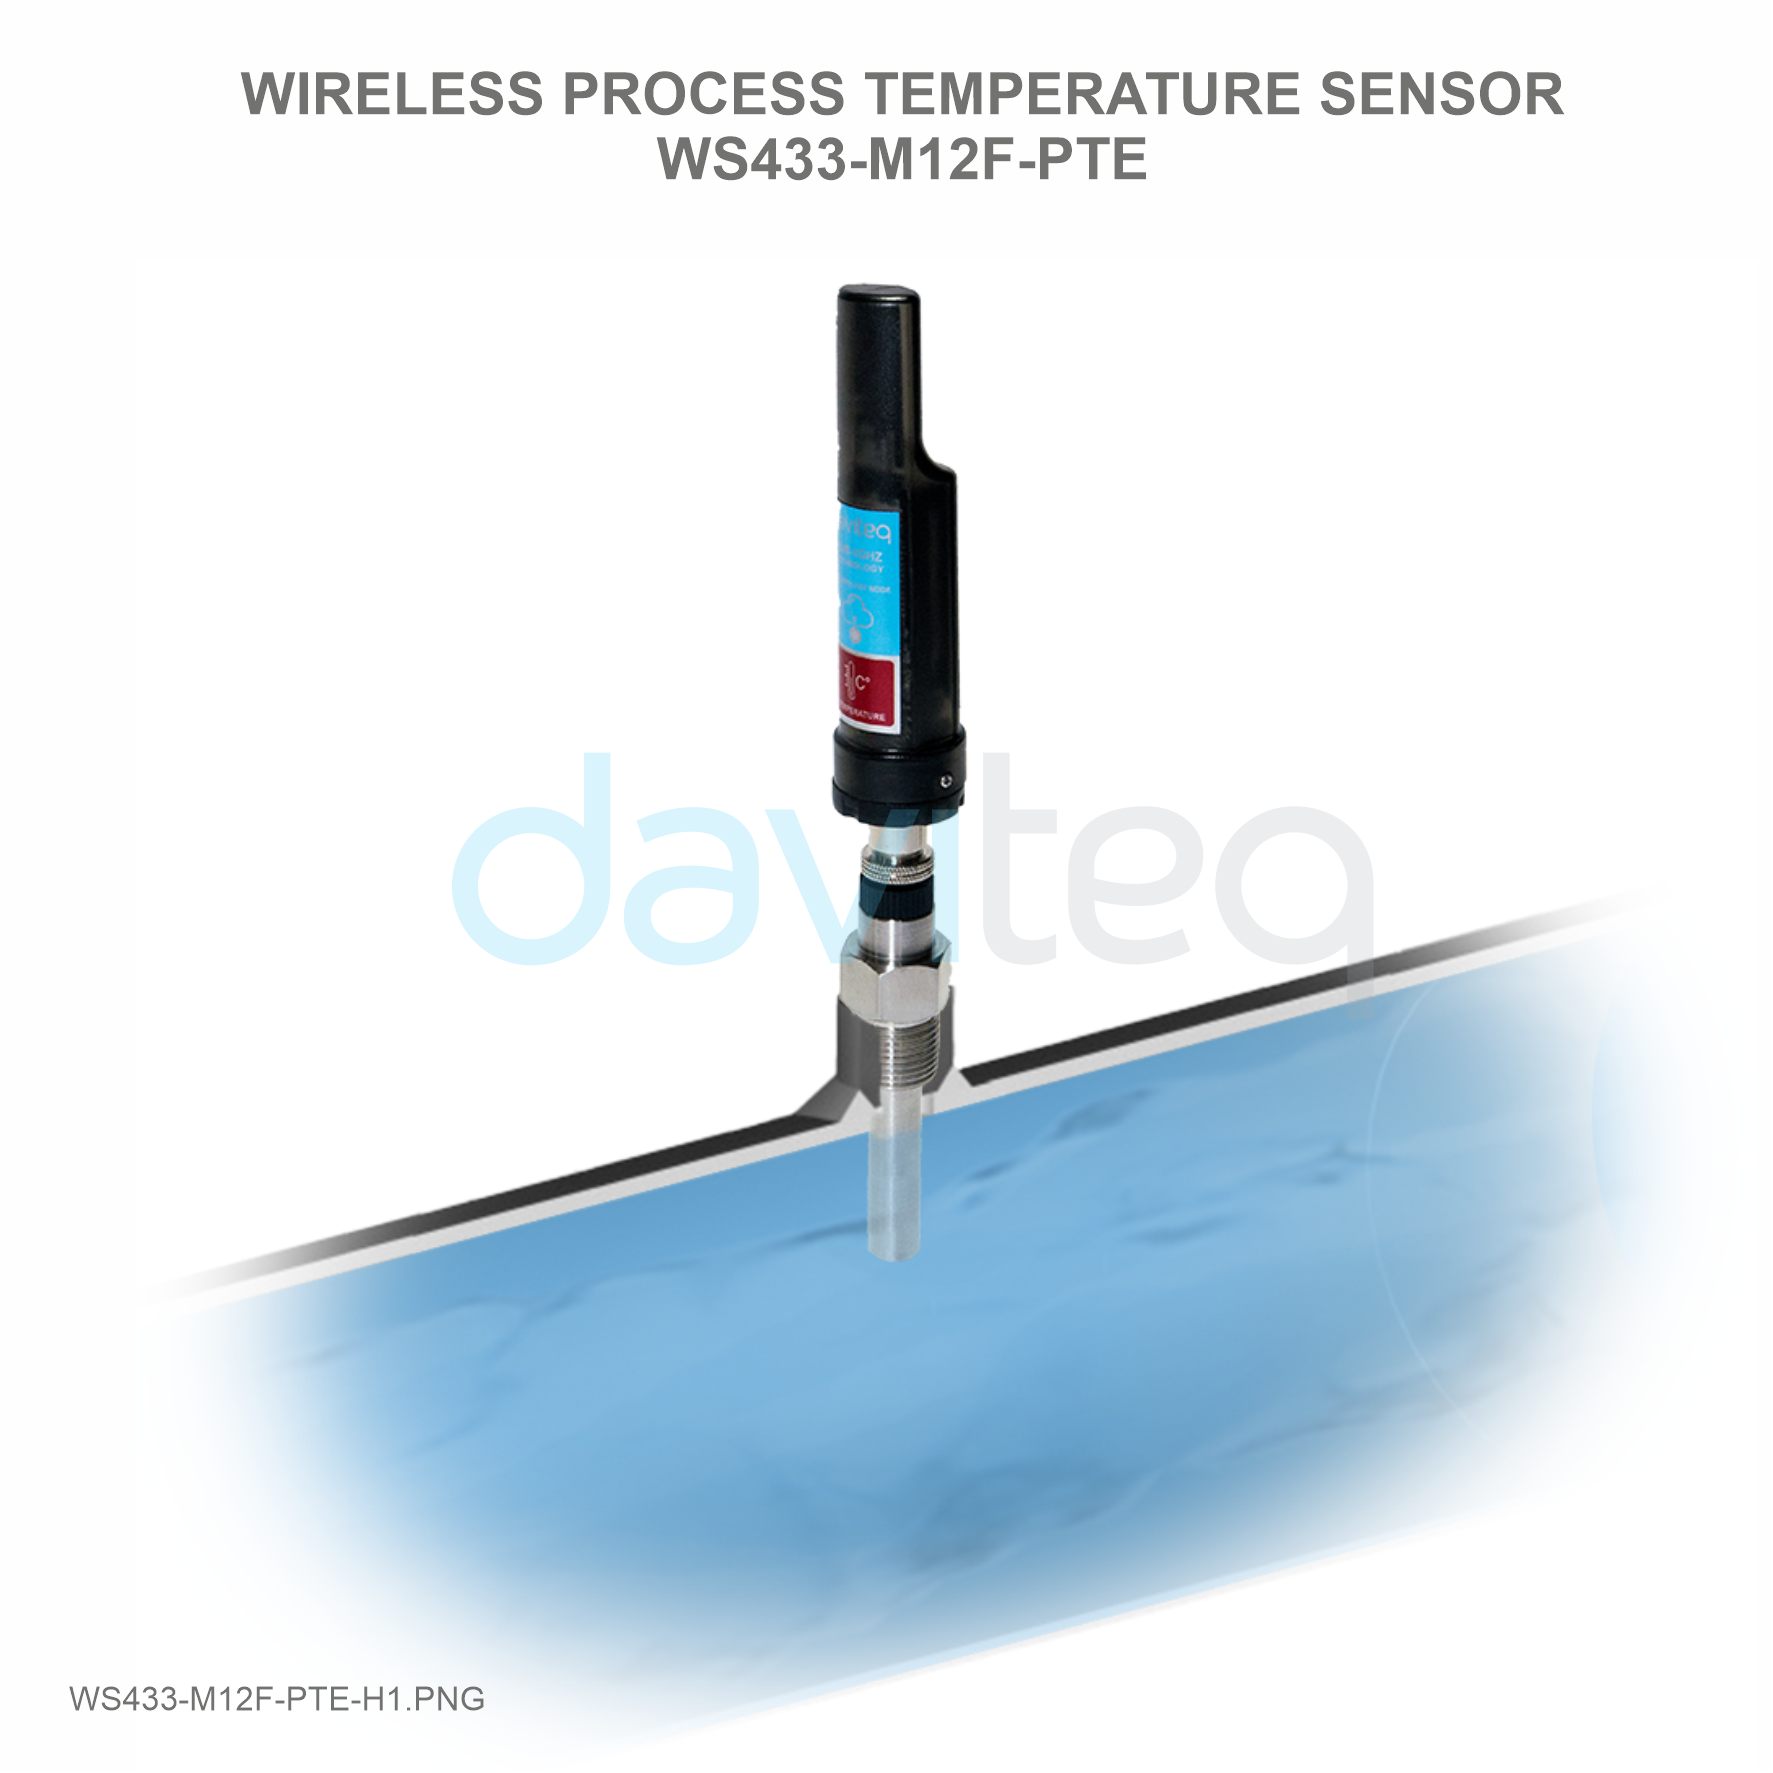 Wireless Process Temperature Sensor